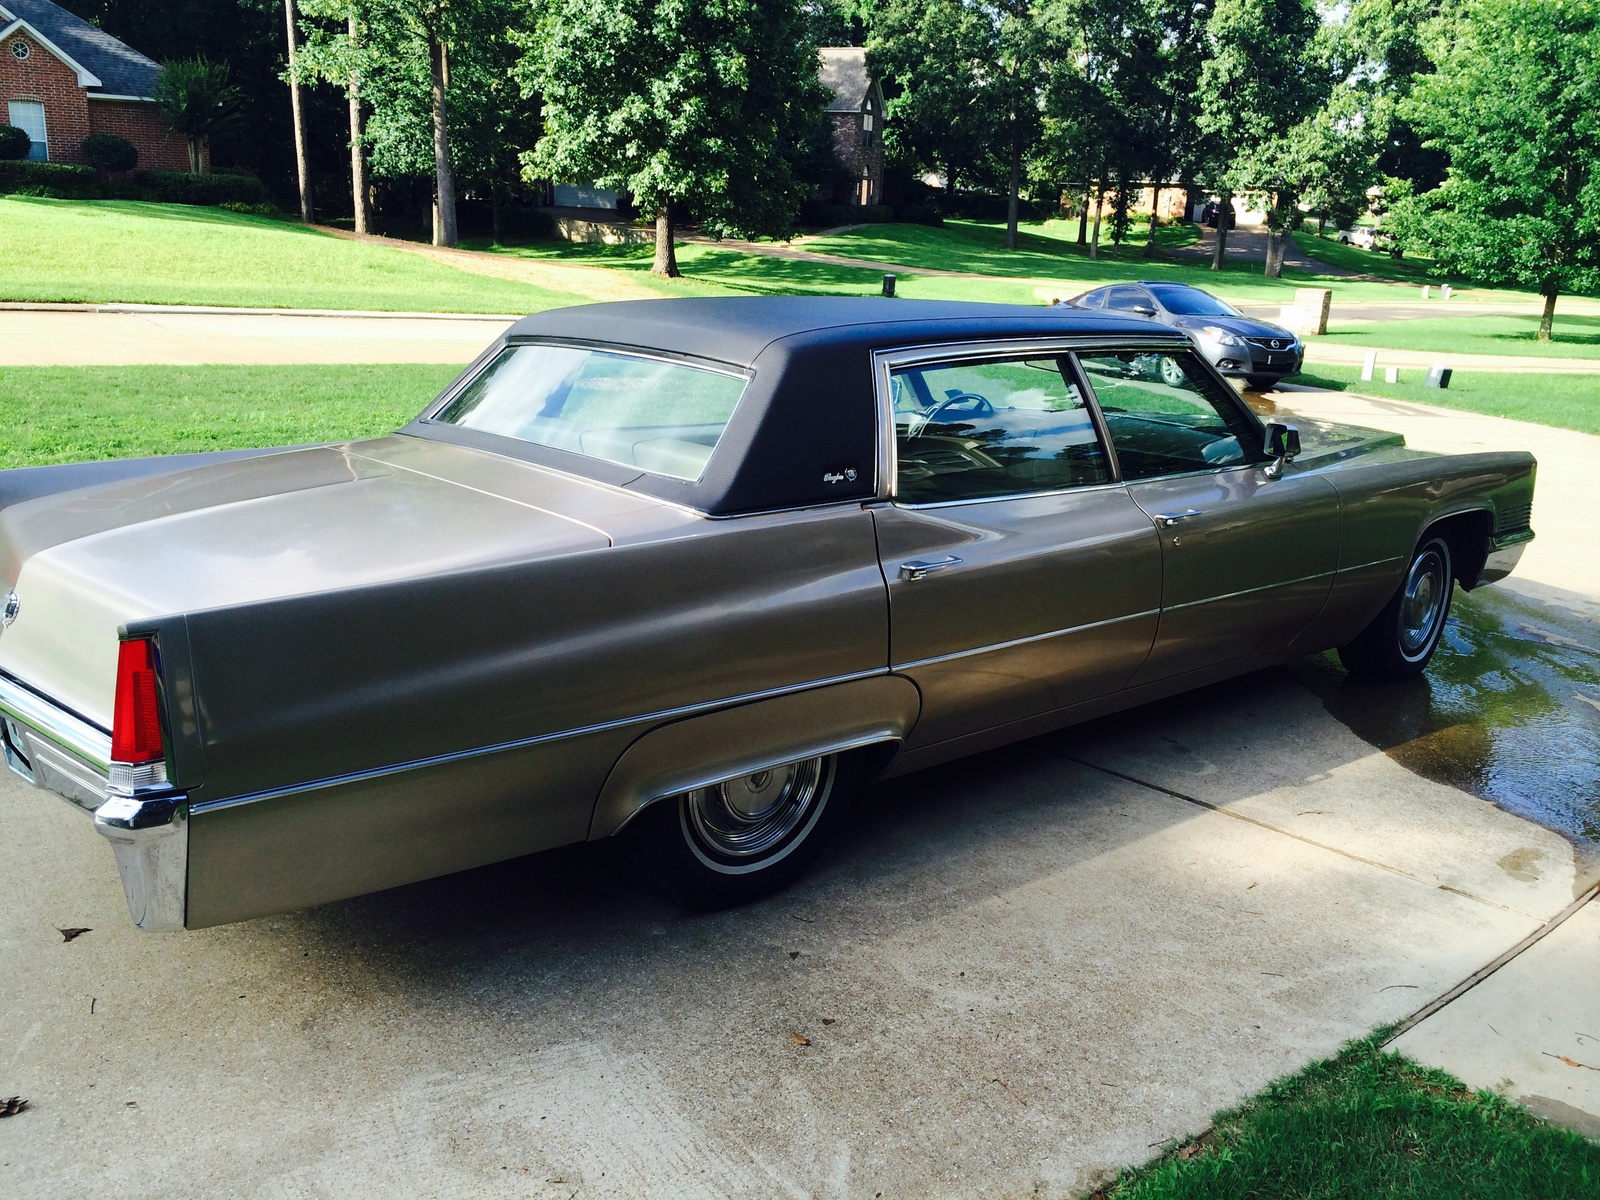 1969 Cadillac Fleetwood - Overview - CarGurus